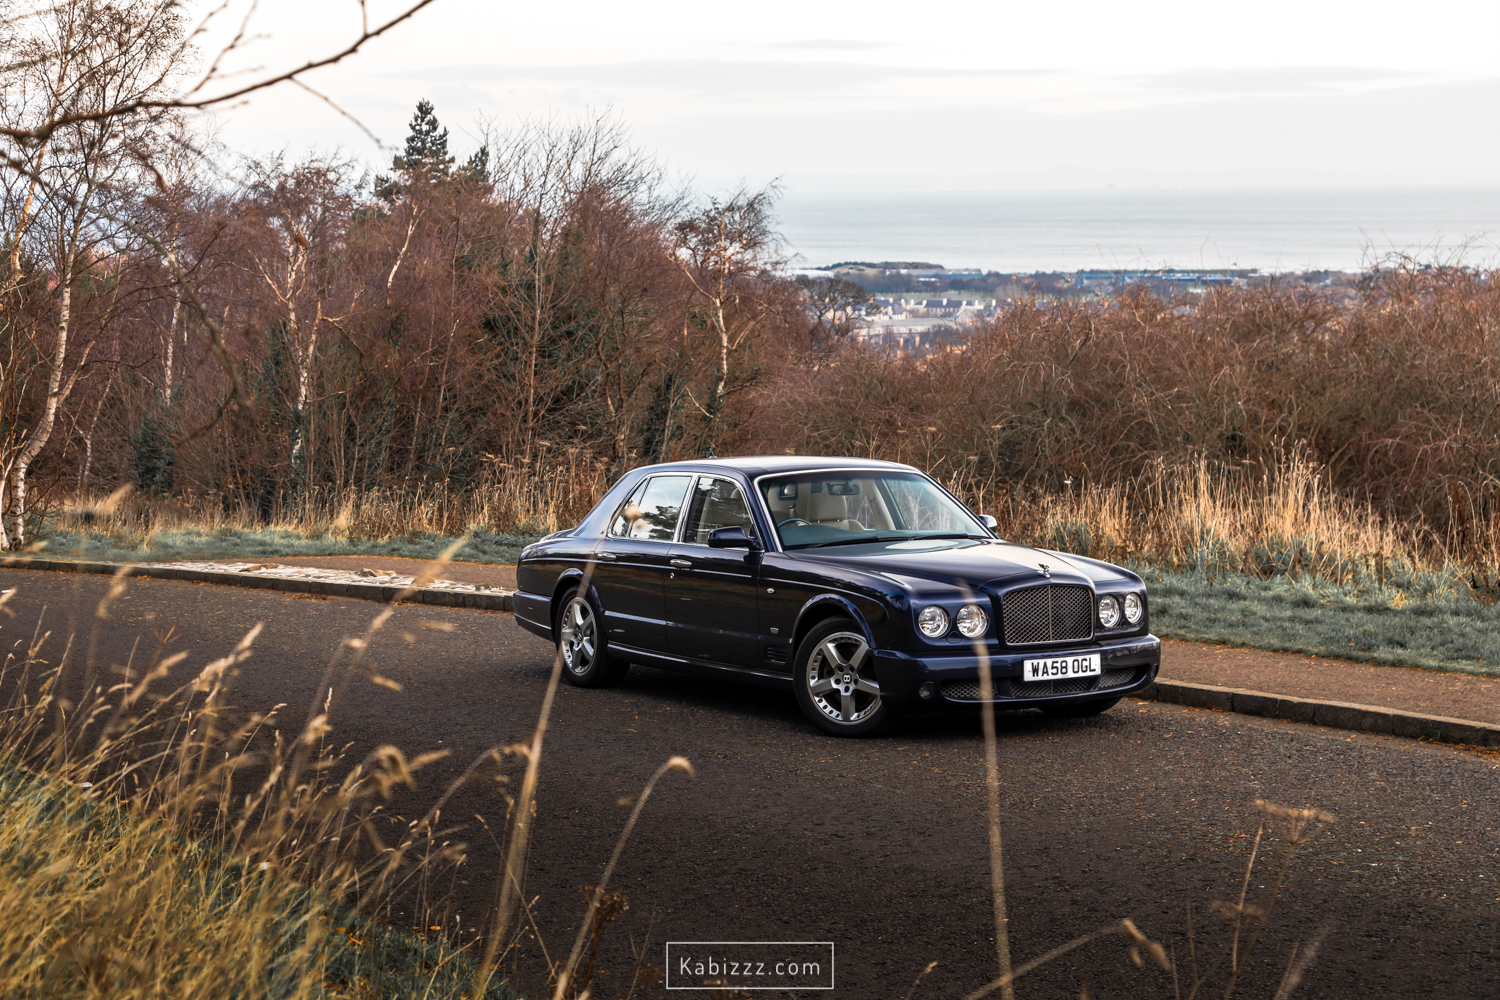 2008_bentley_arnage_blue_automotive_photography_kabizzz-7.jpg